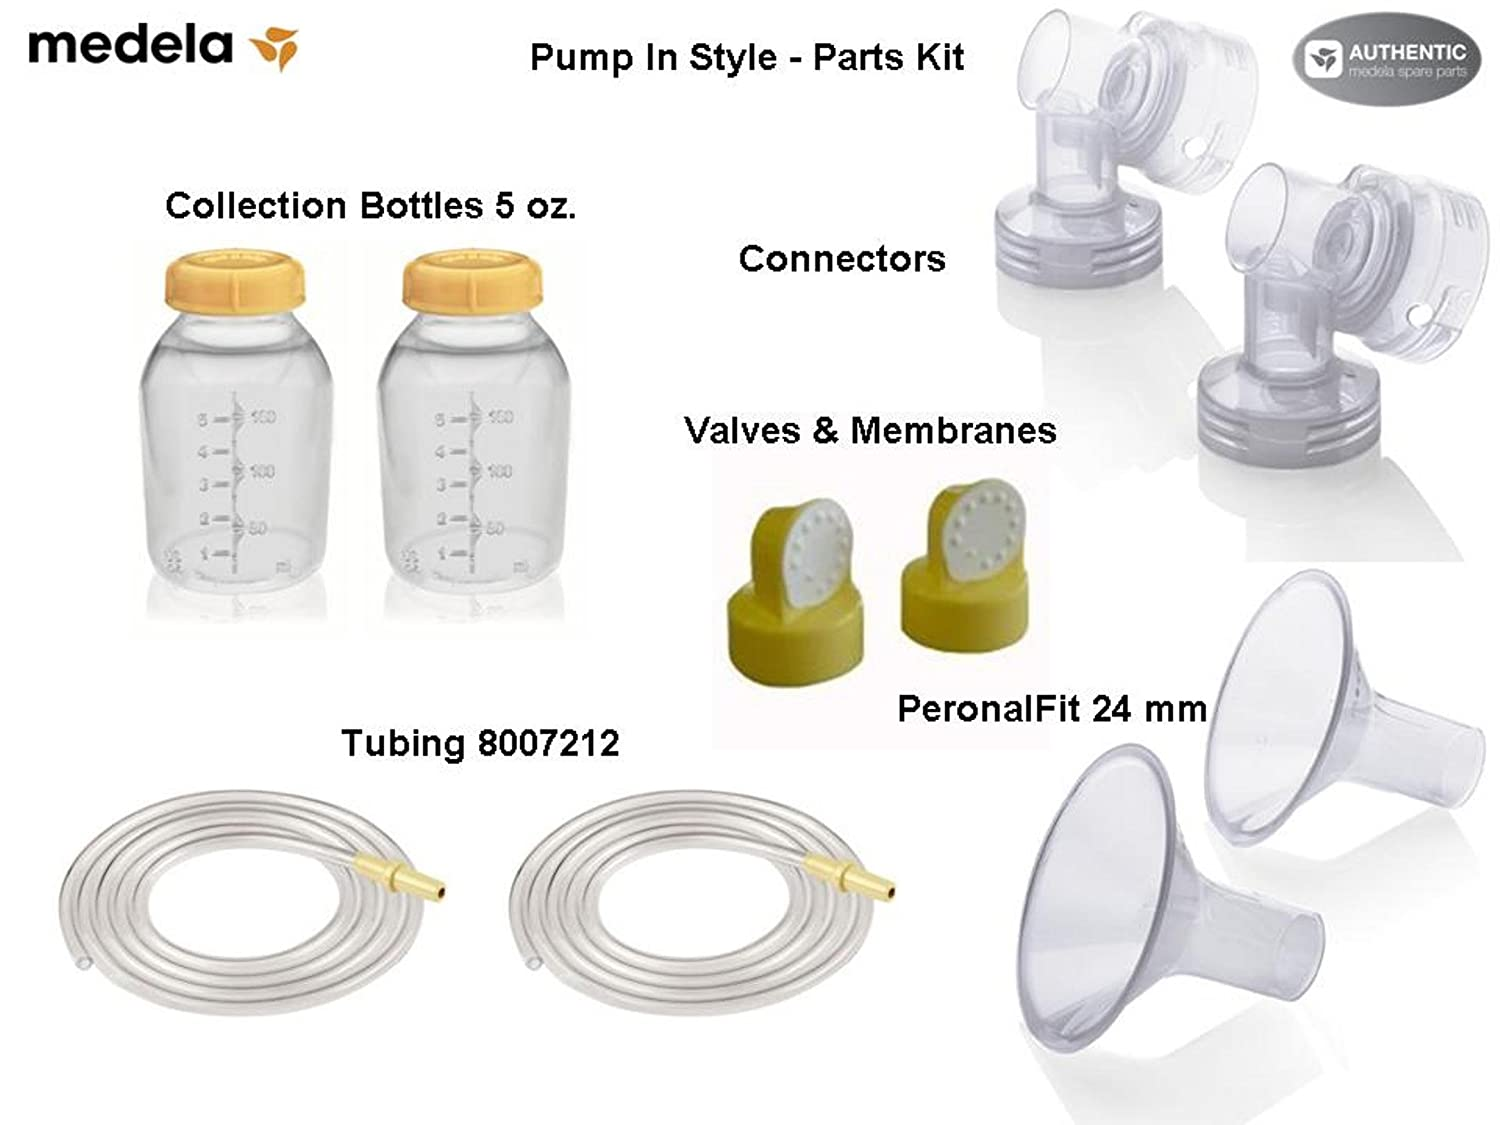 Medela Replacement Parts Kit Pump In Style Original/ Advanced with Medium 24 mm Breast Shield and Tubing #8007212